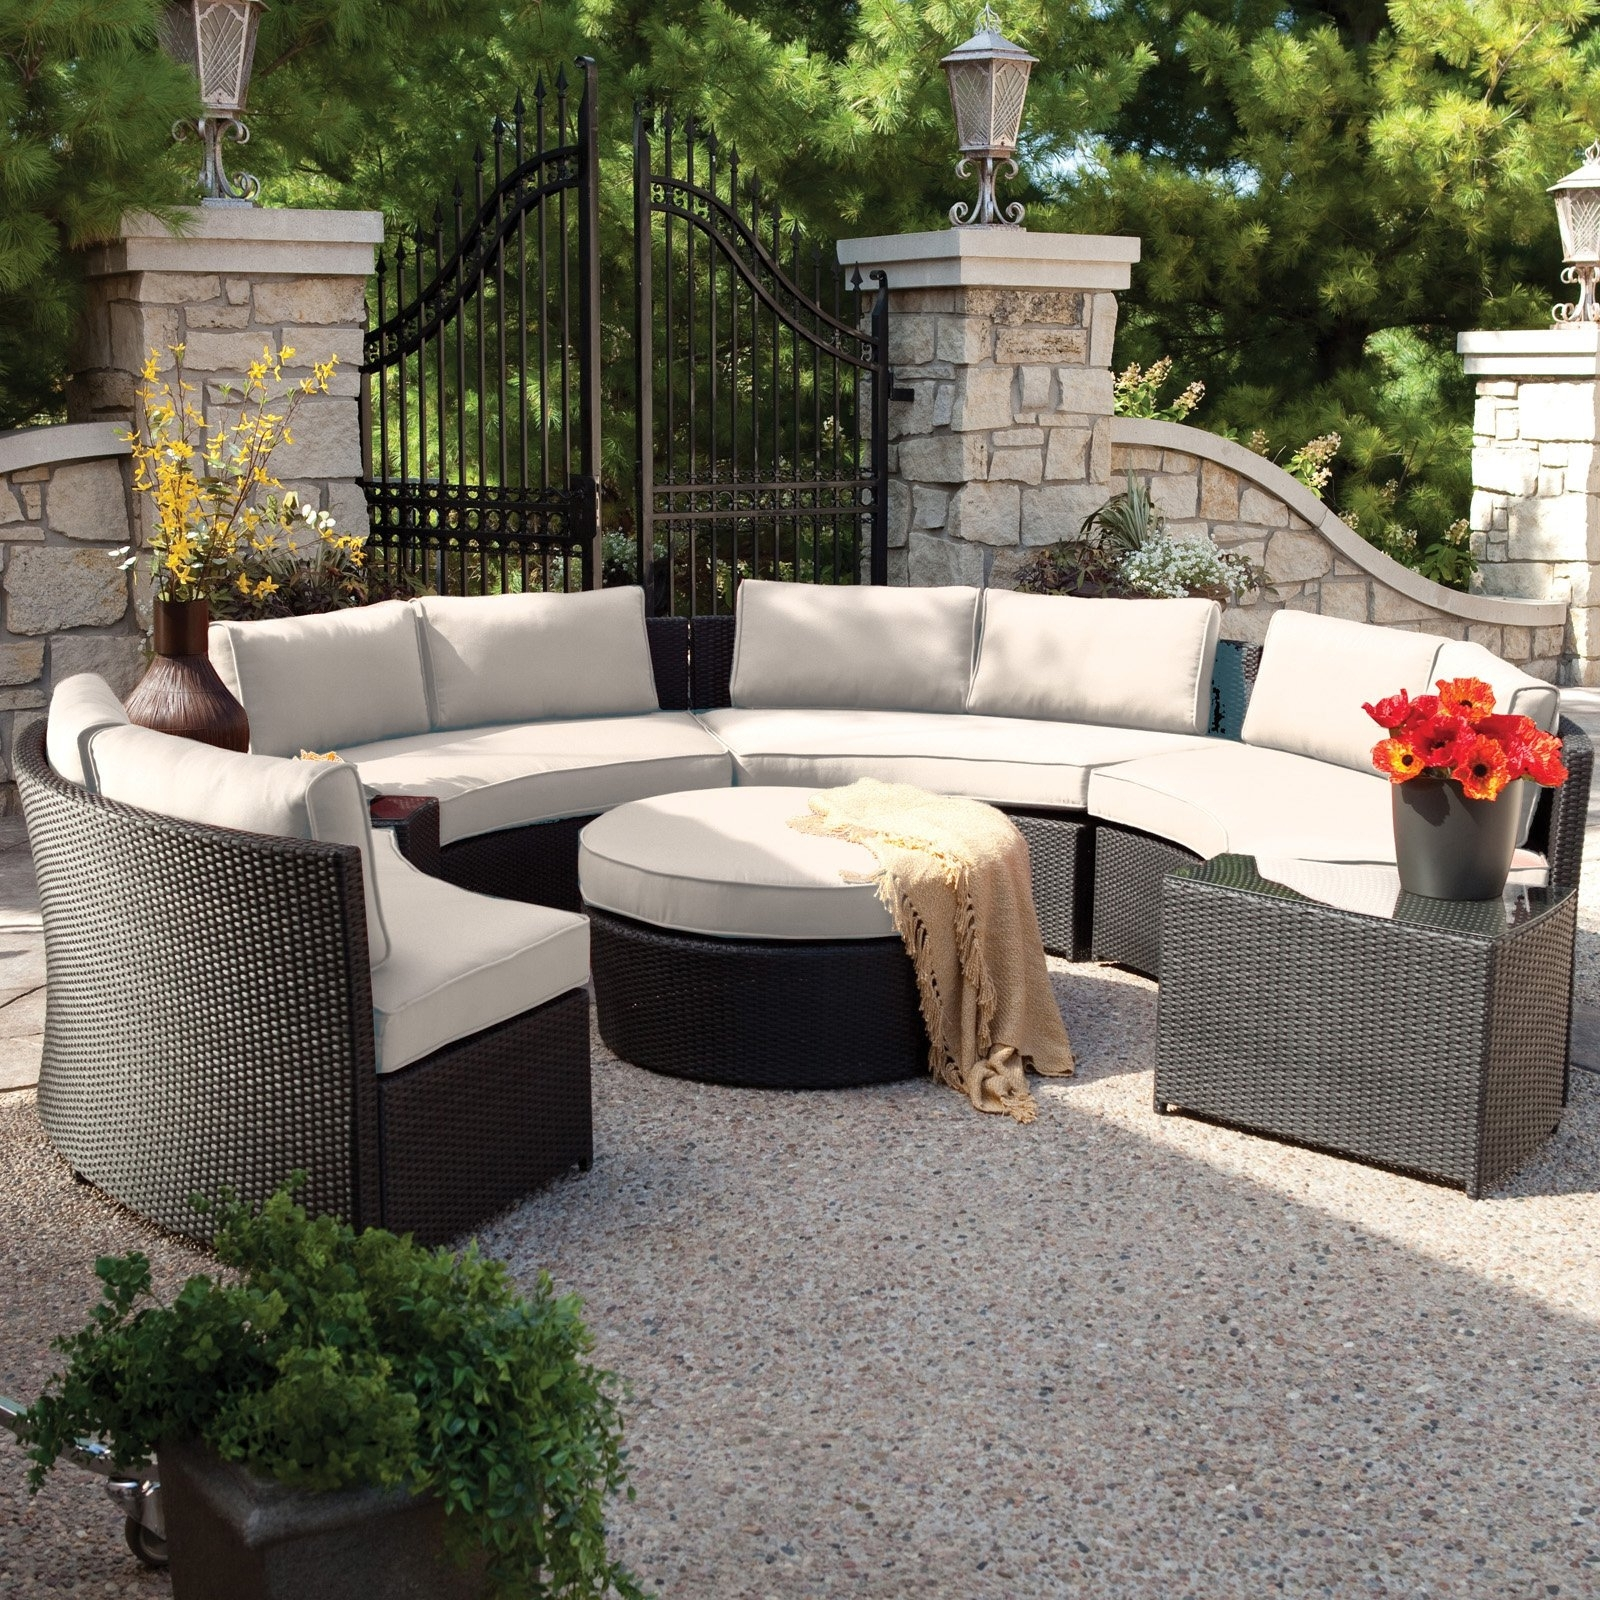 Belham Living Meridian Round Outdoor Wicker Patio Furniture Set With Inside Well Known Round Patio Conversation Sets (View 3 of 20)